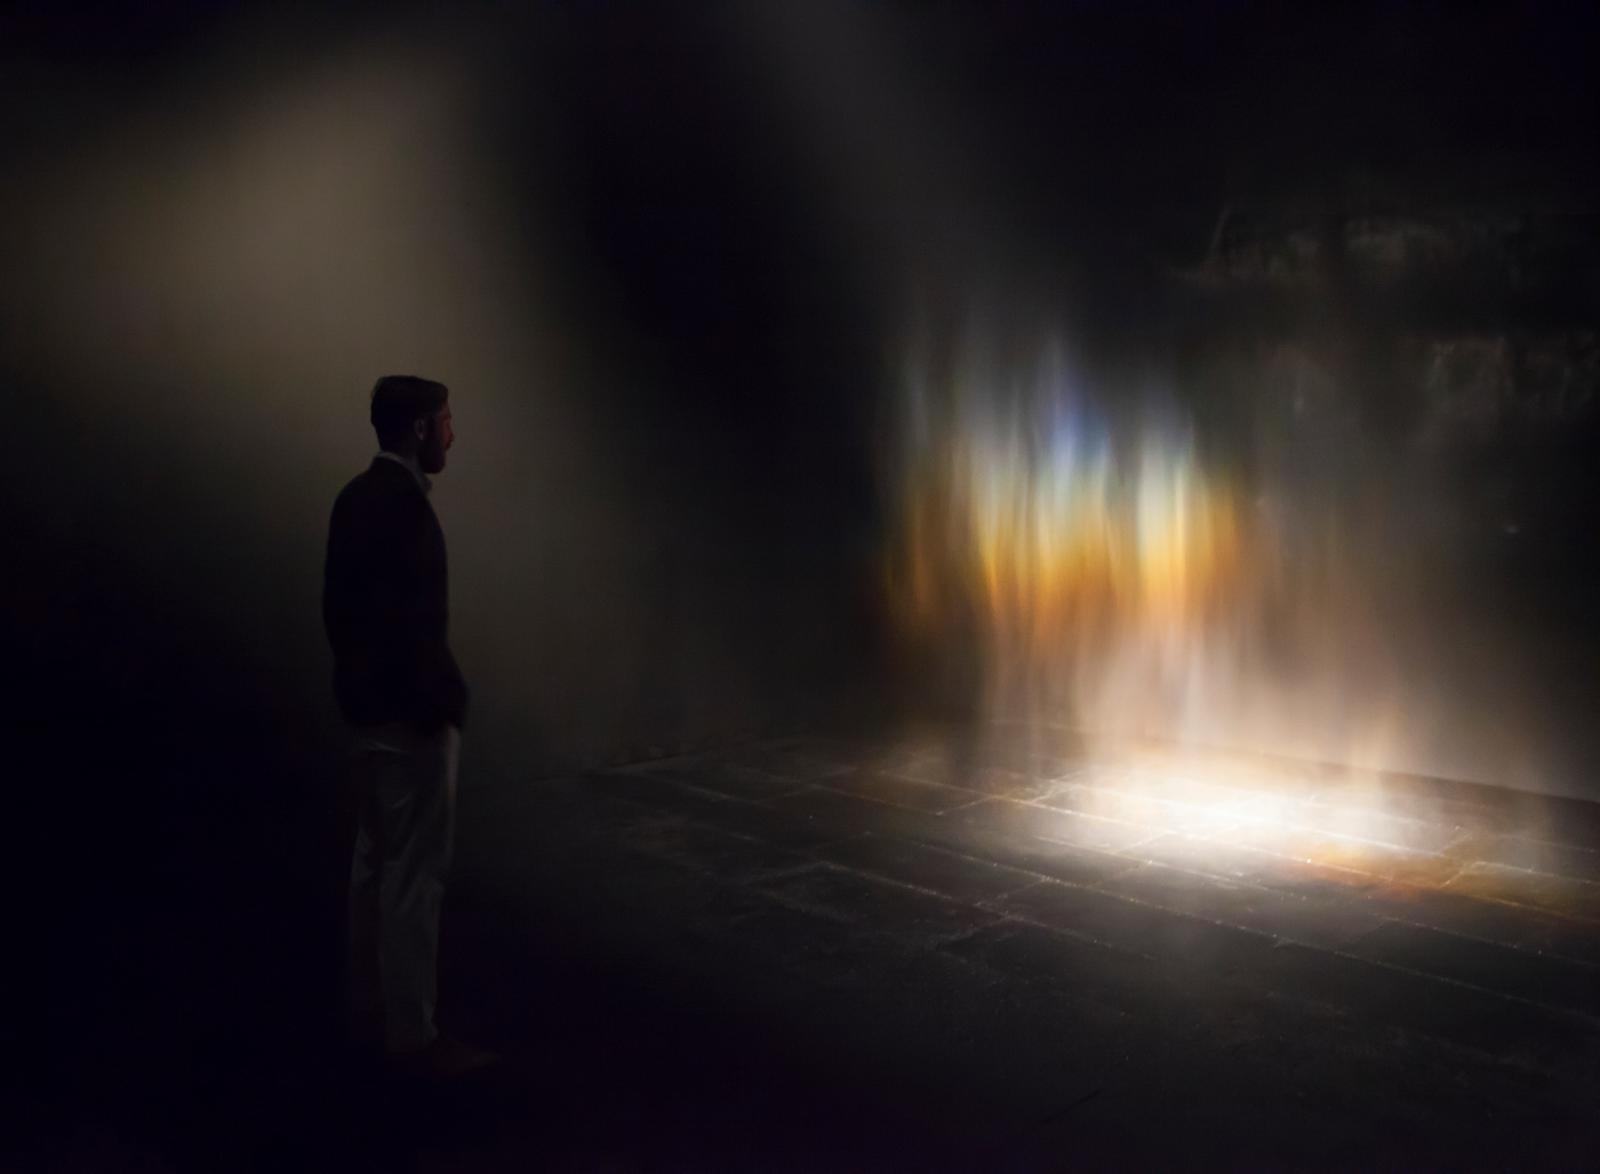 Beauty • Artwork • Studio Olafur Eliasson